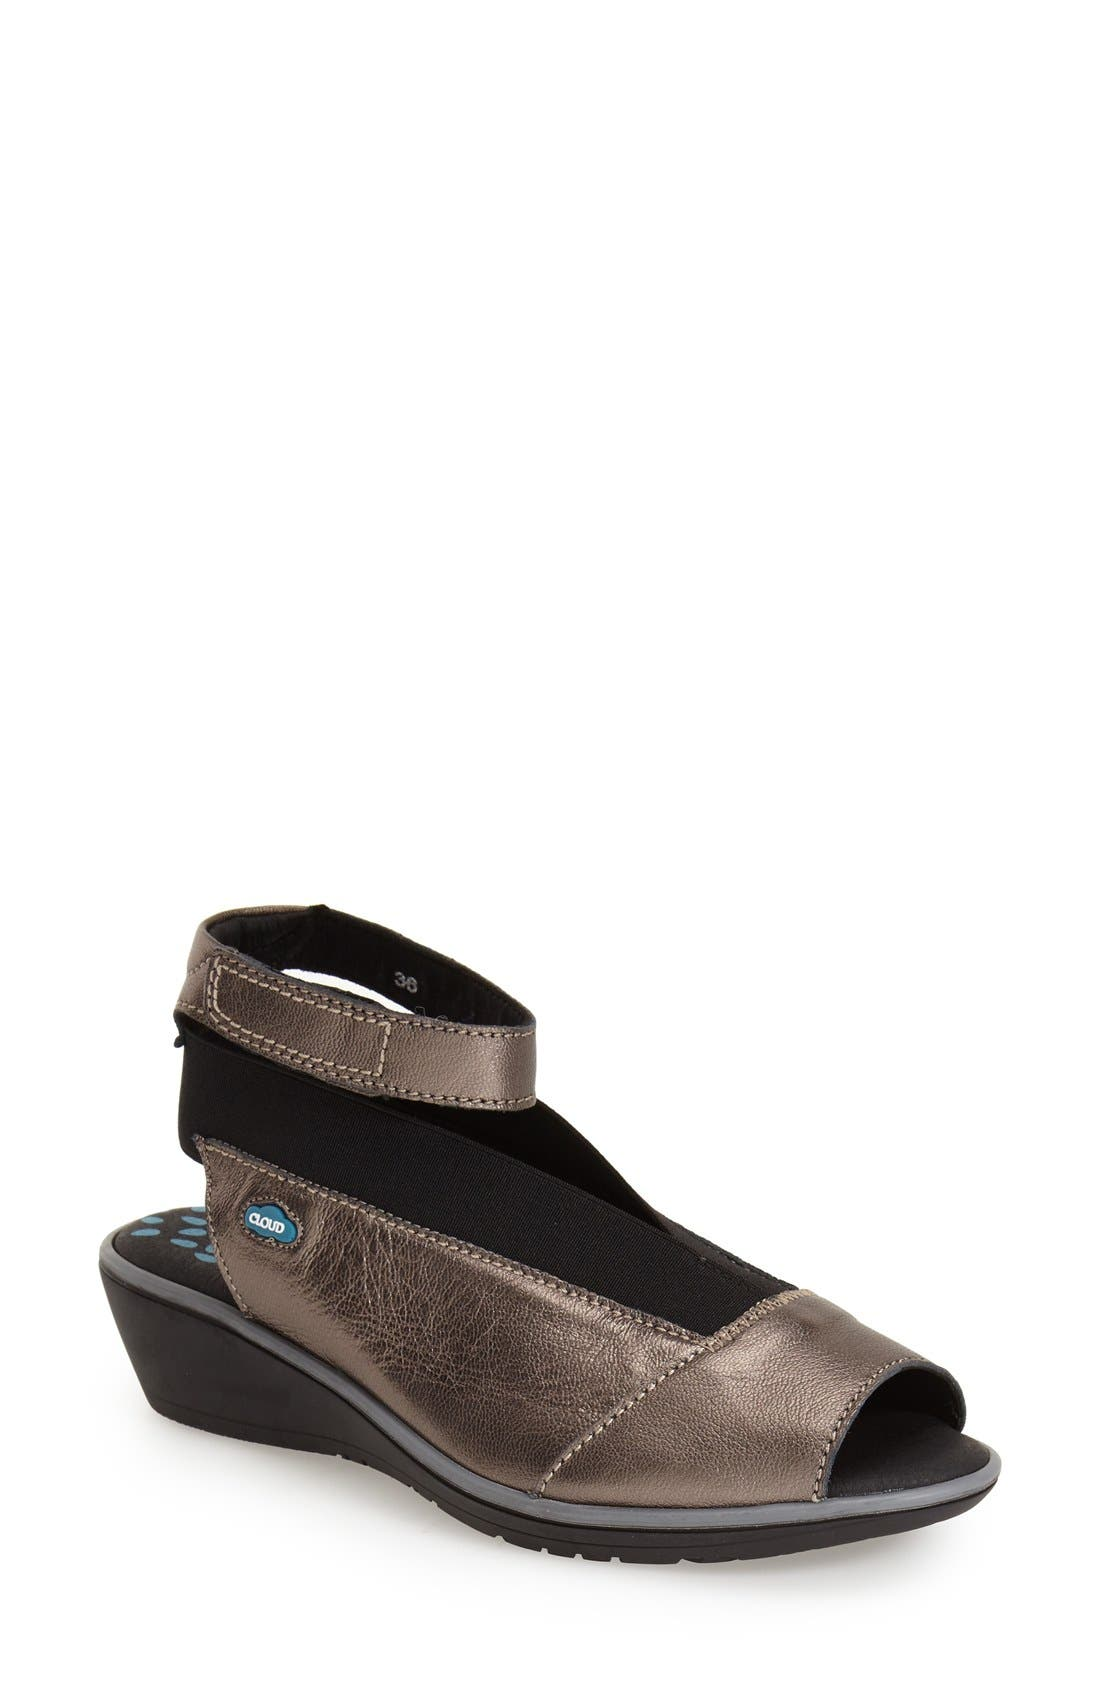 Alternate Image 1 Selected - CLOUD Saucy Ankle Strap Wedge (Women)